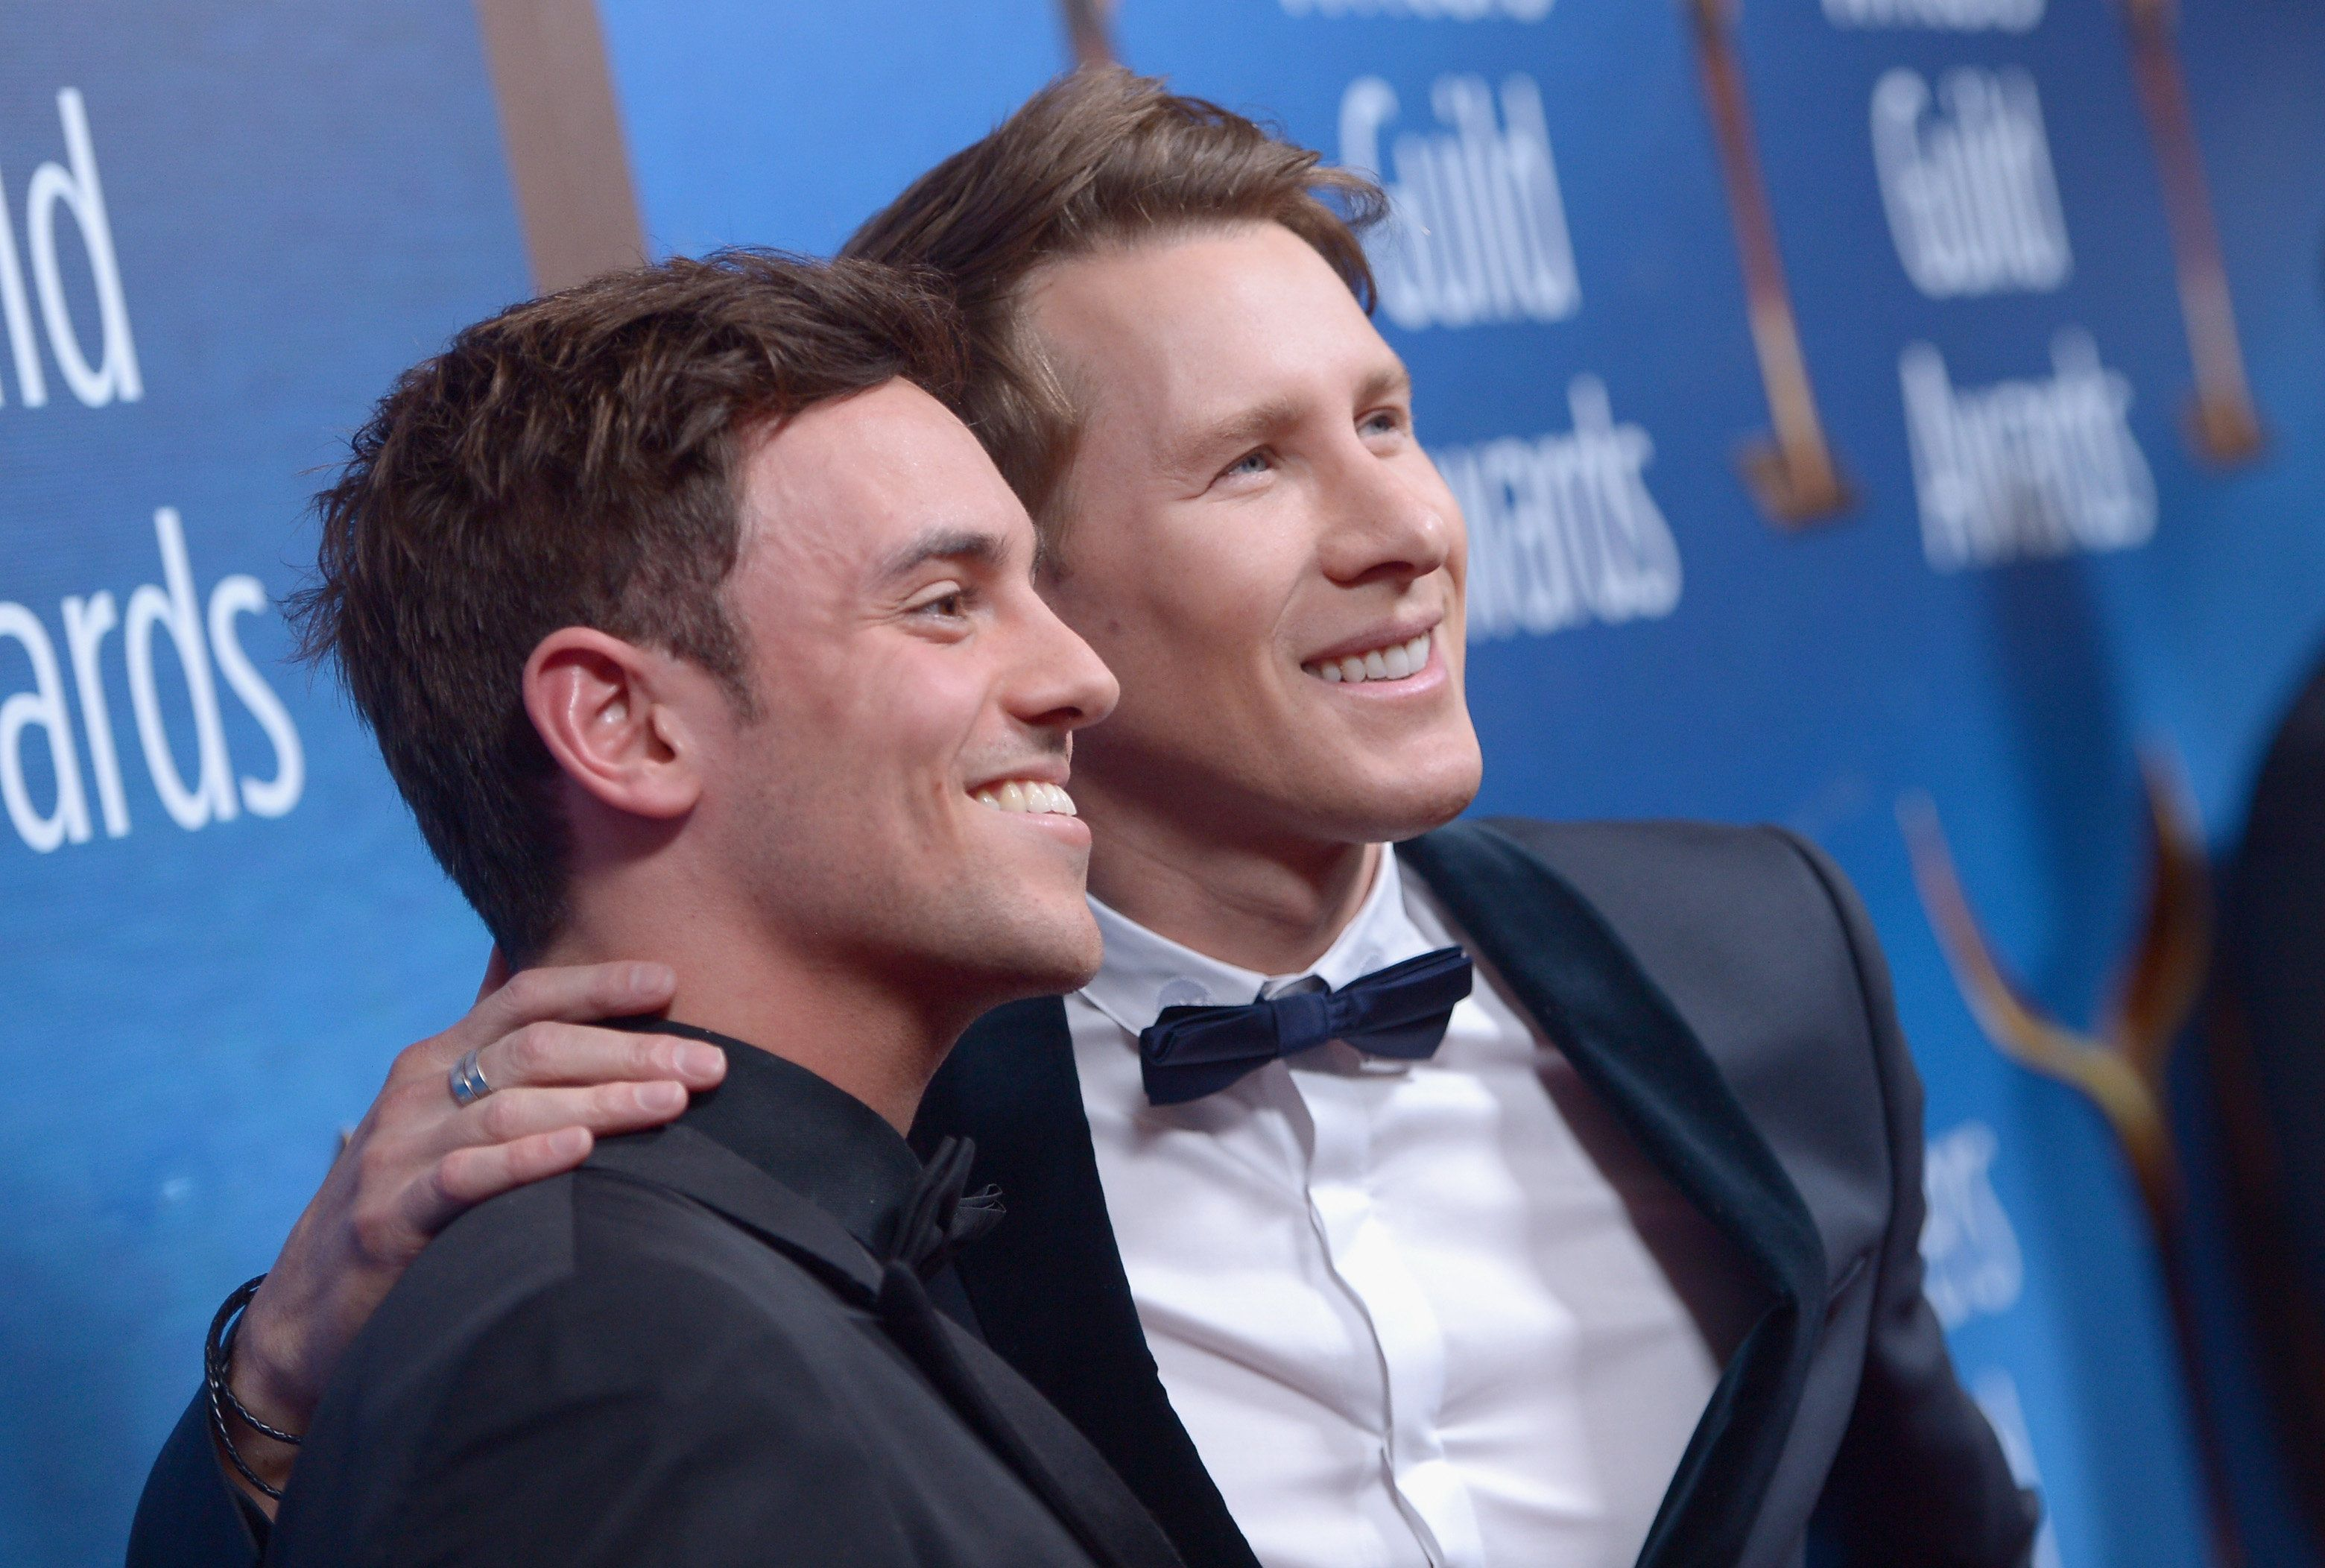 Tom Daley and husband Dustin Lance Black announce they're having a baby